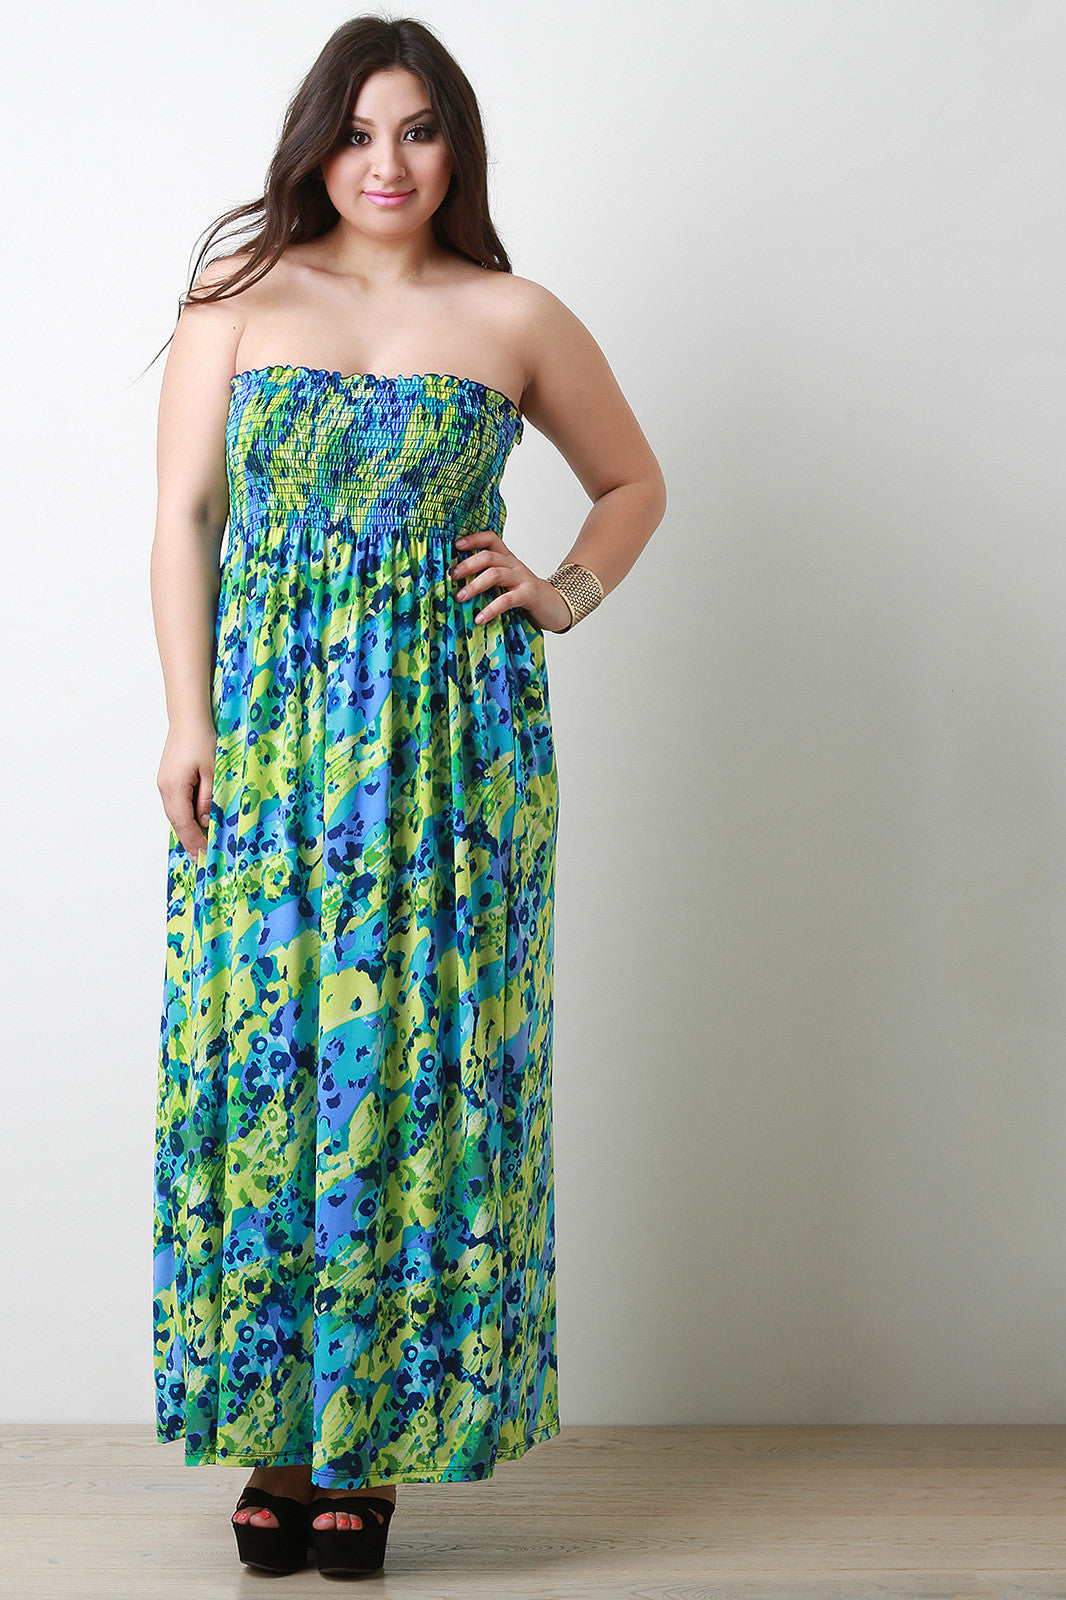 Abstract Empire Waist Strapless Maxi Dress - Thick 'N' Curvy Shop - 1